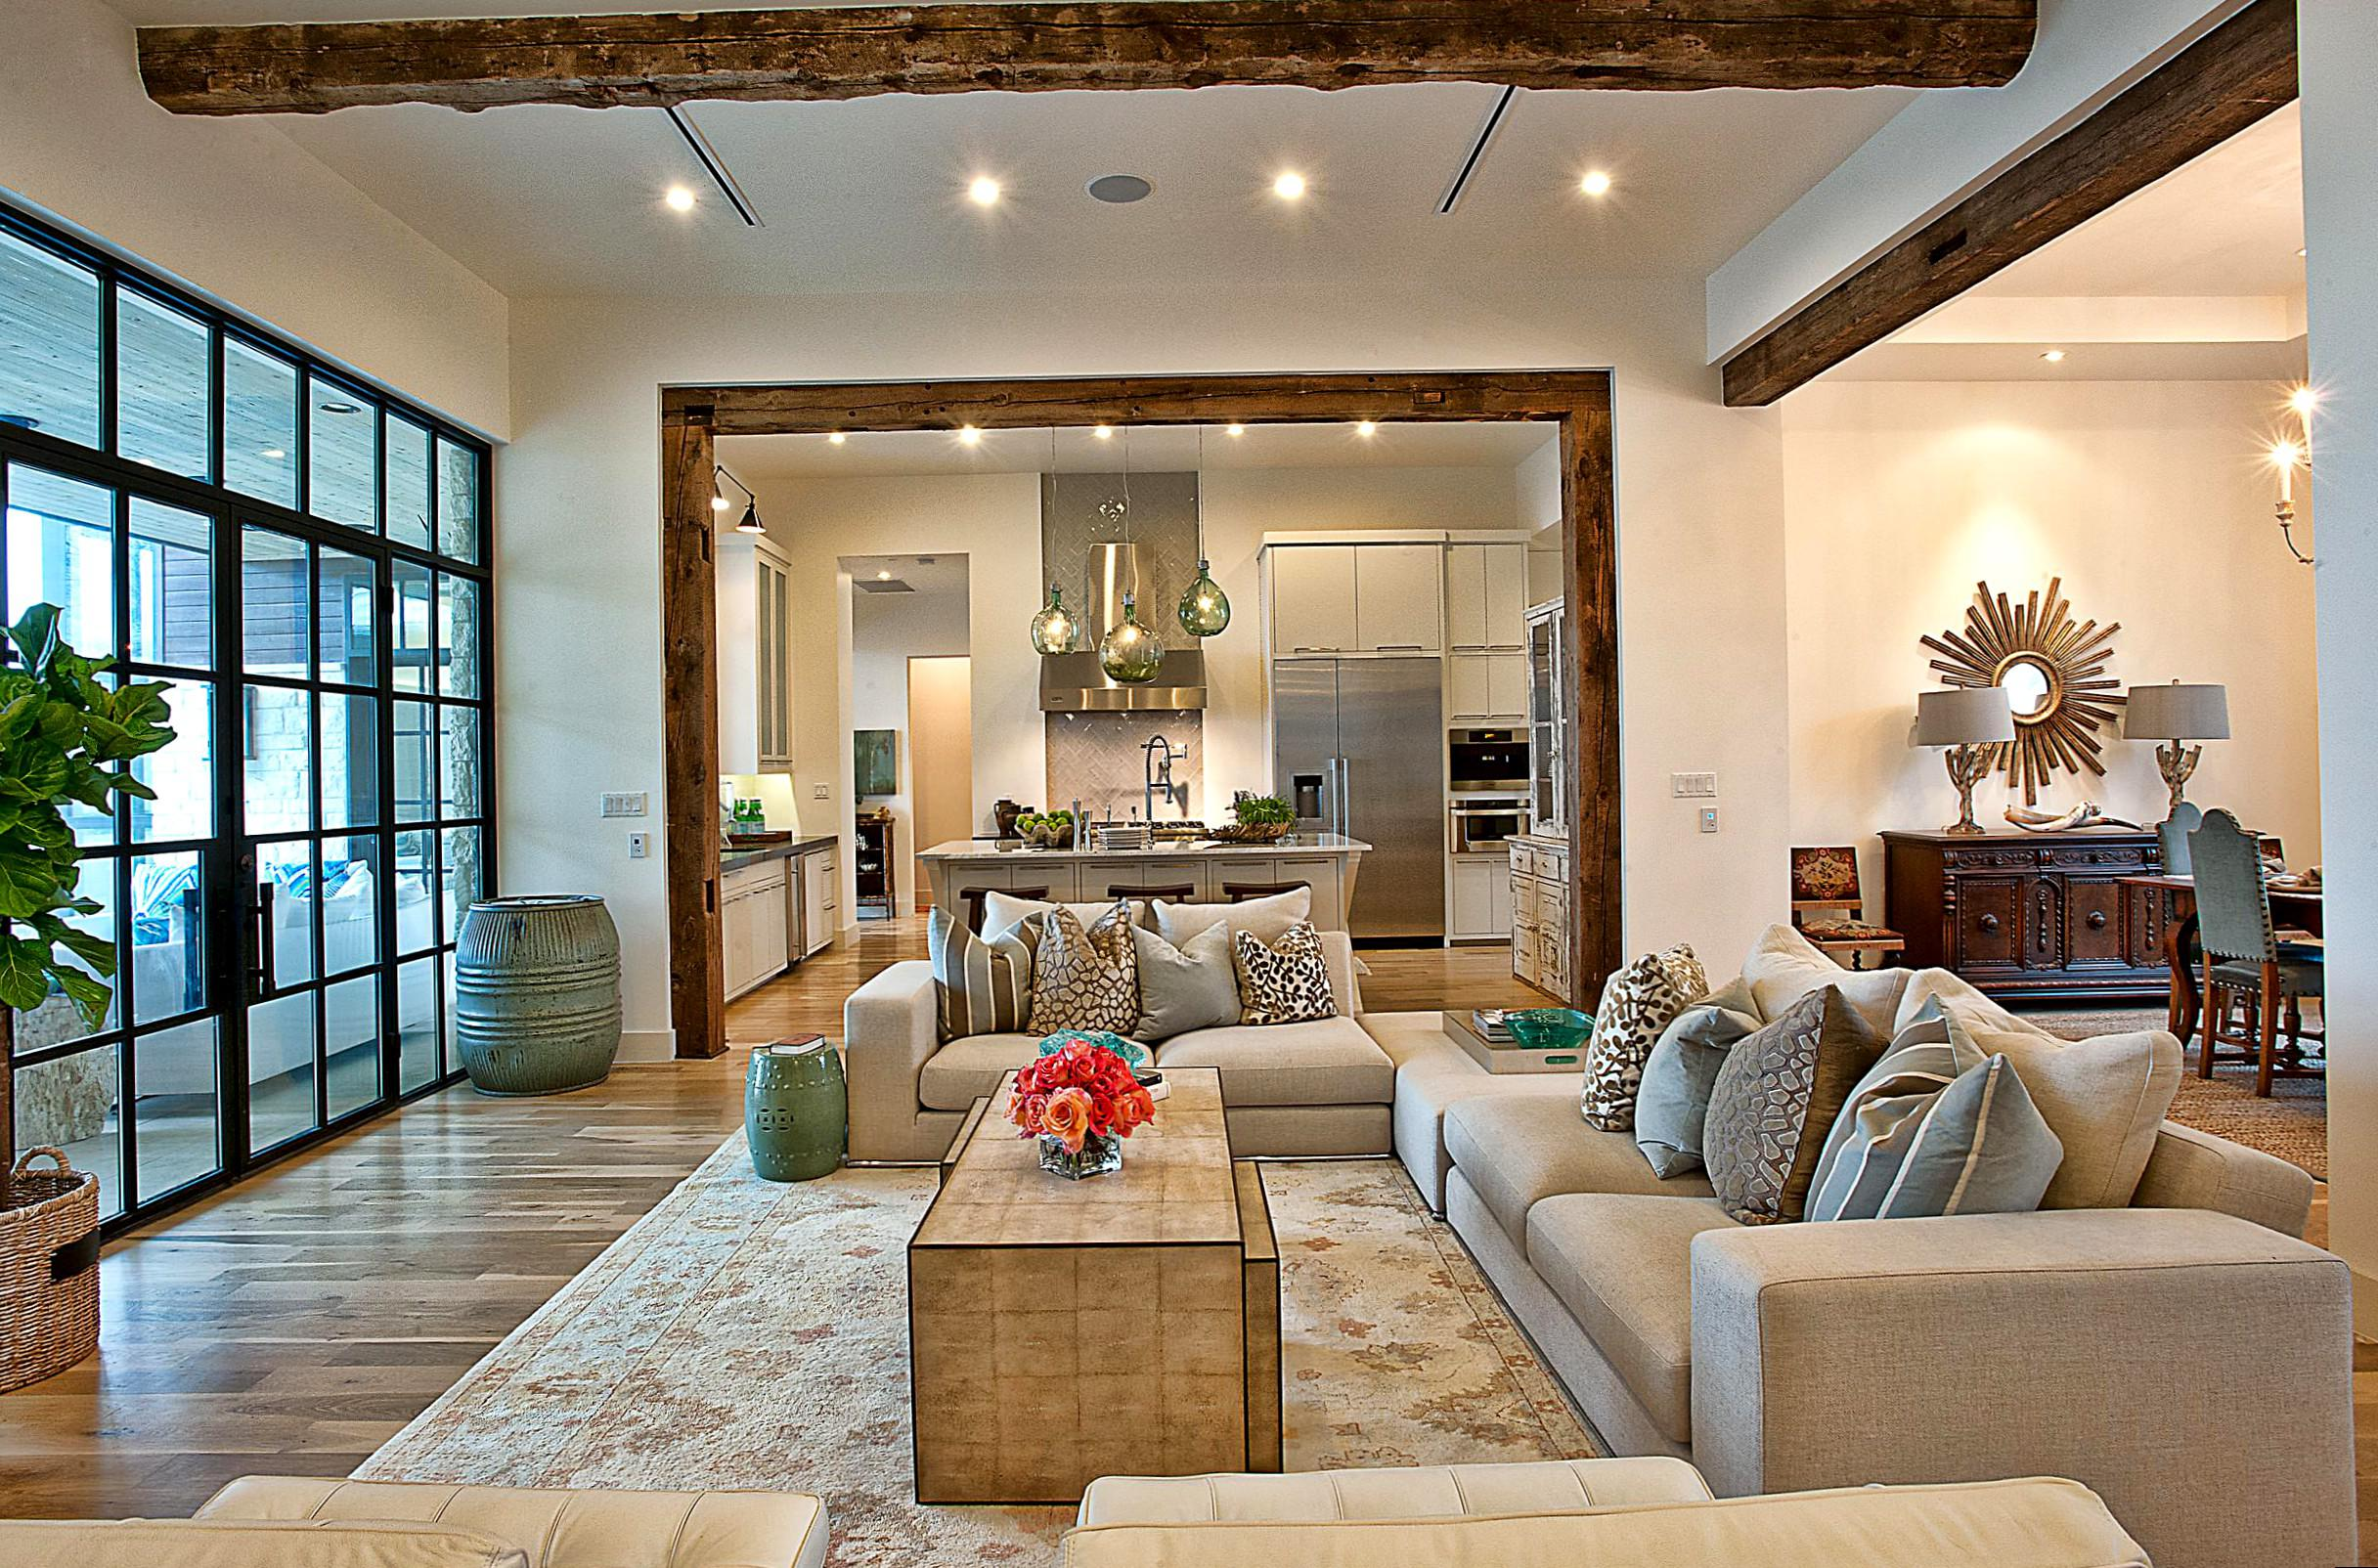 Image of: House Renovation Ideas Images